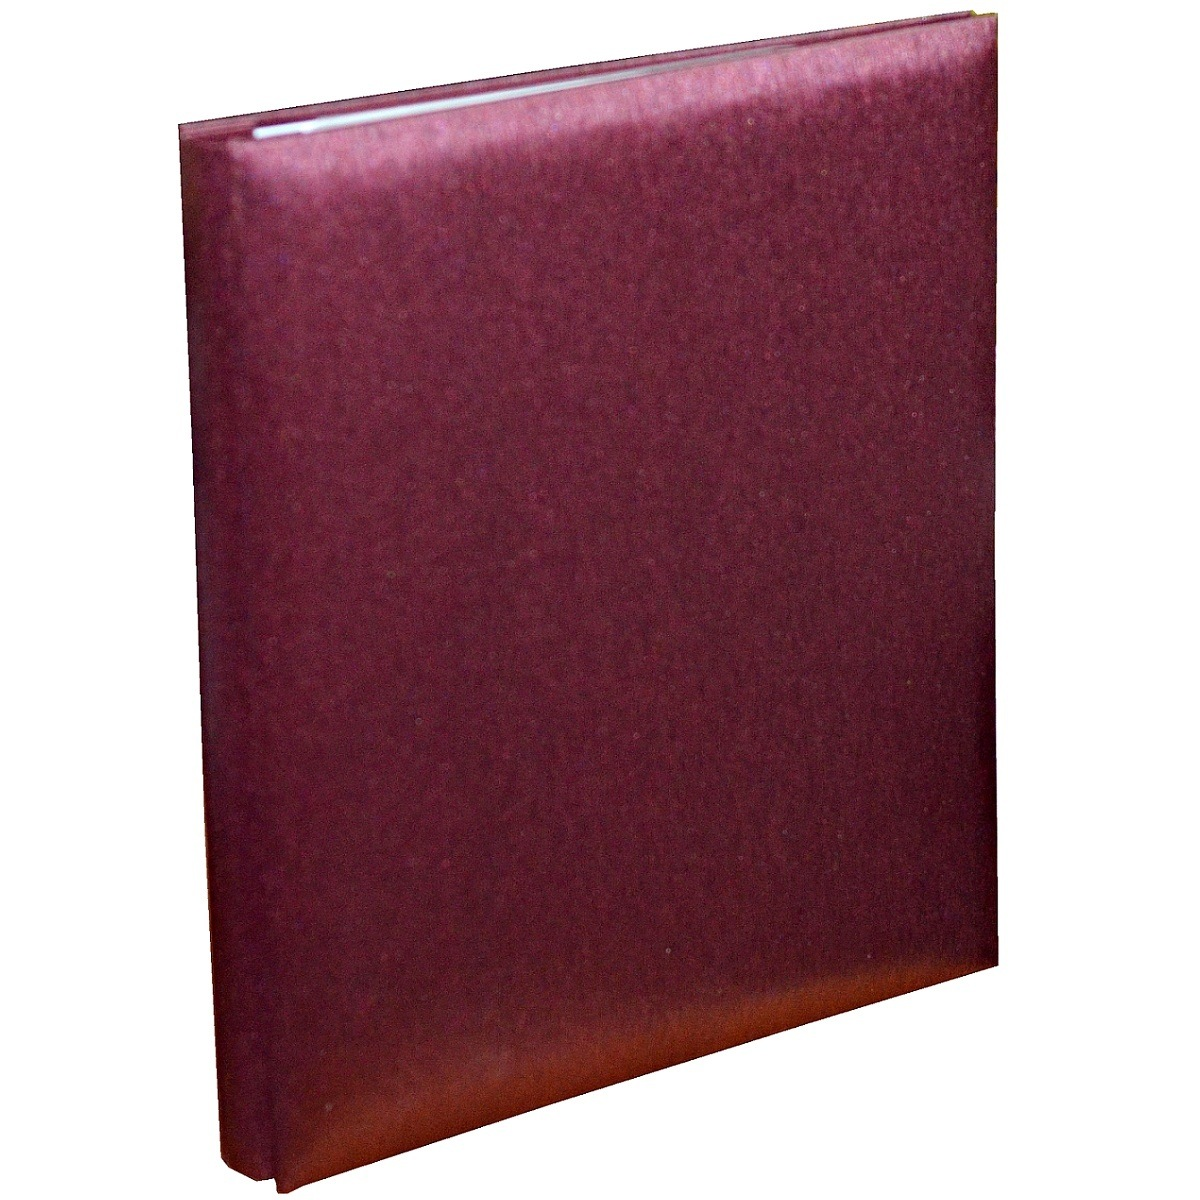 ALBUM SOLID BORDO  SS40str. 31,5x32,5